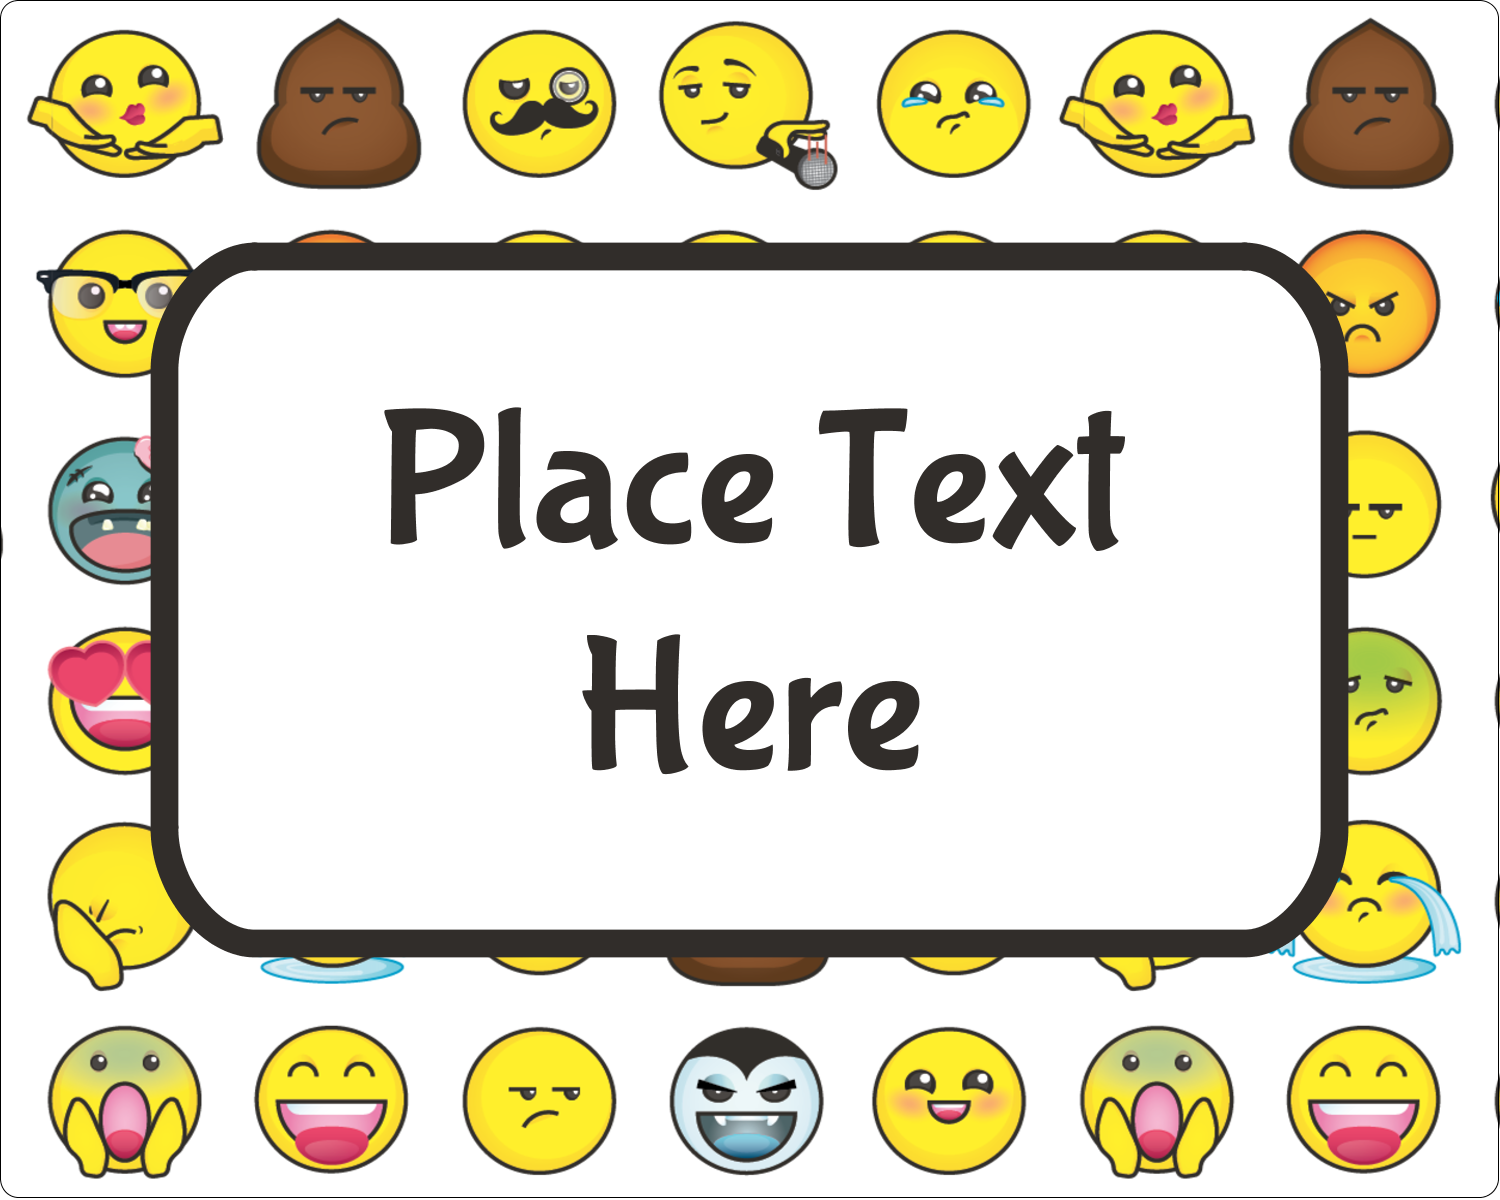 "3"" x 3¾"" Rectangular Label - Emoji Faces"